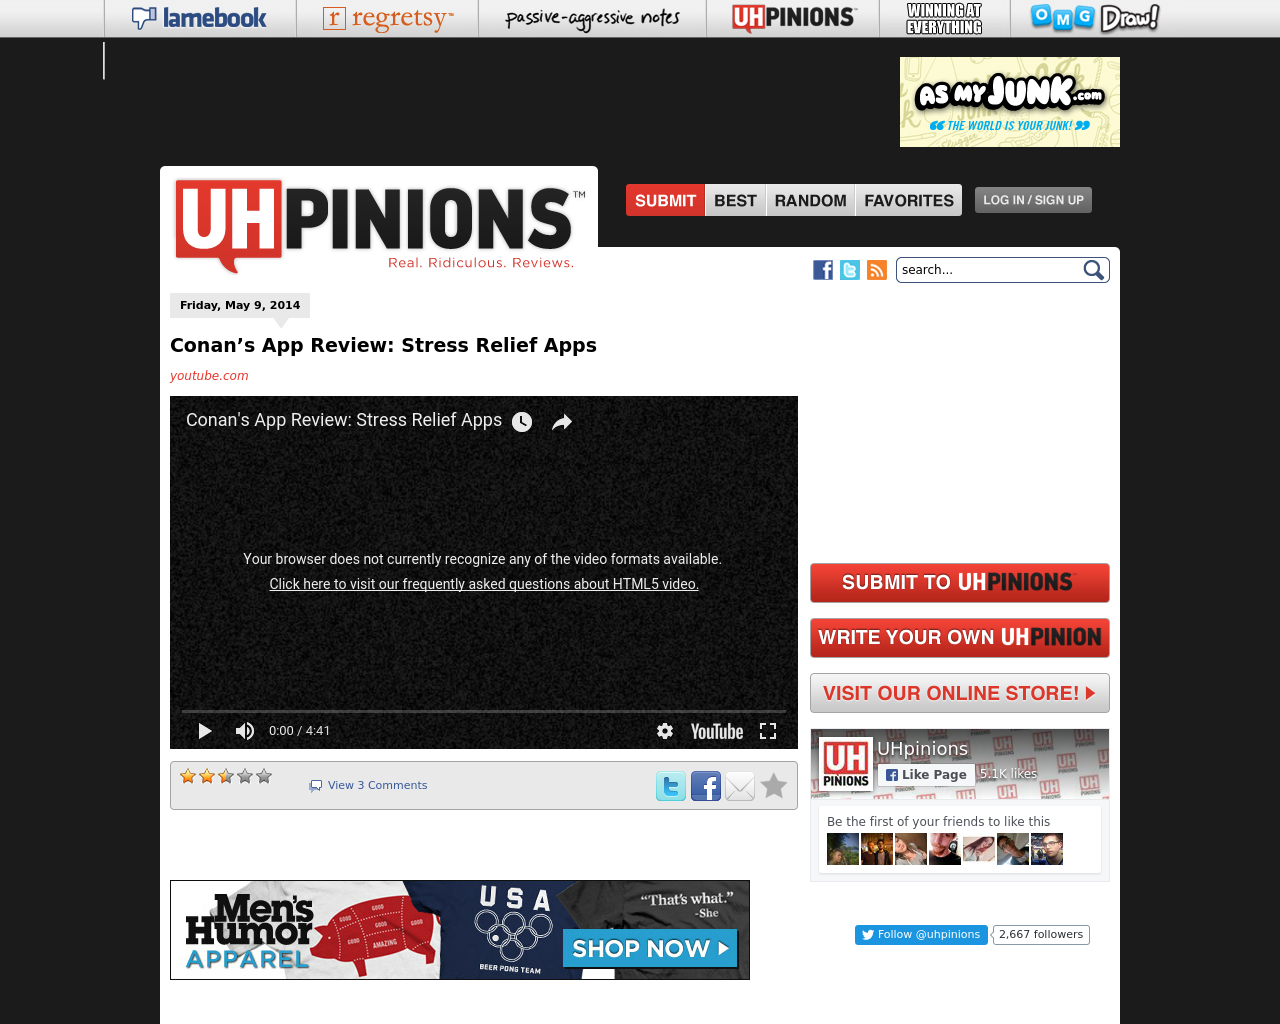 UHPINIONS-Advertising-Reviews-Pricing